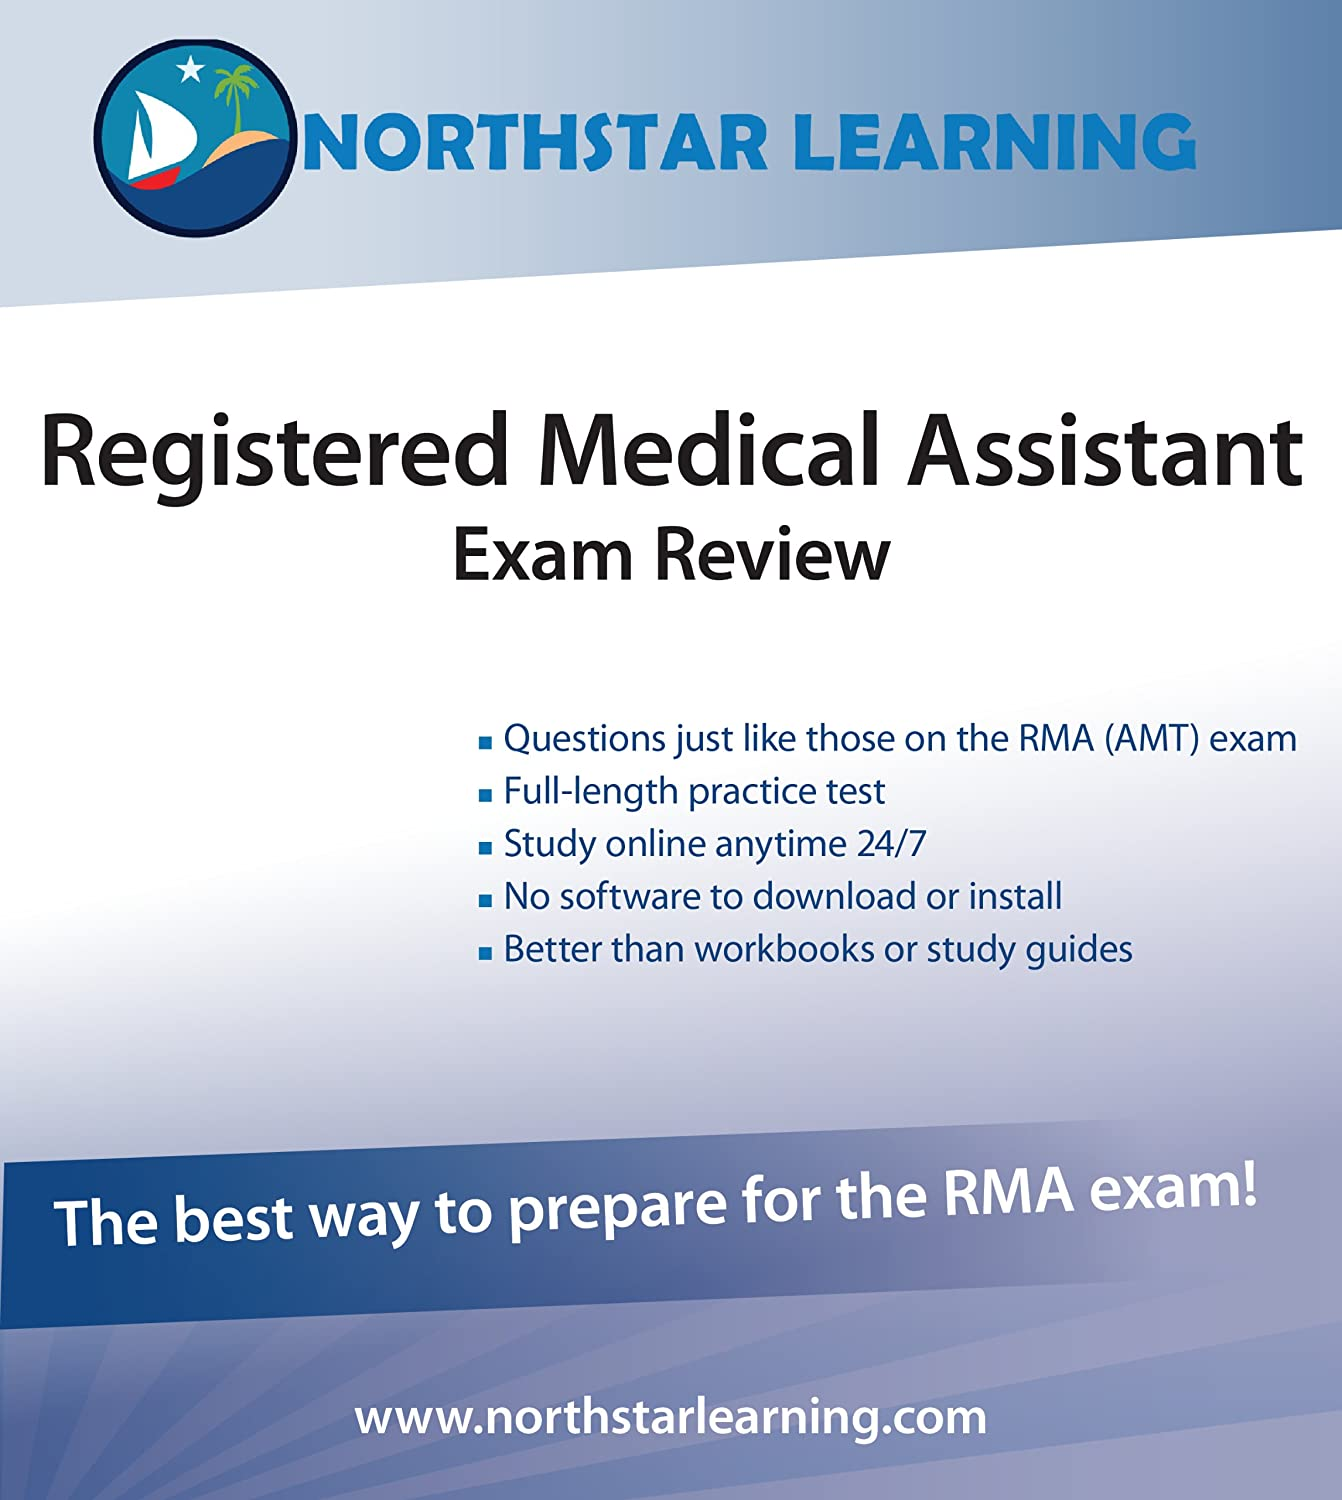 Amazon.com: Registered Medical Assistant (RMA) Exam Online Review